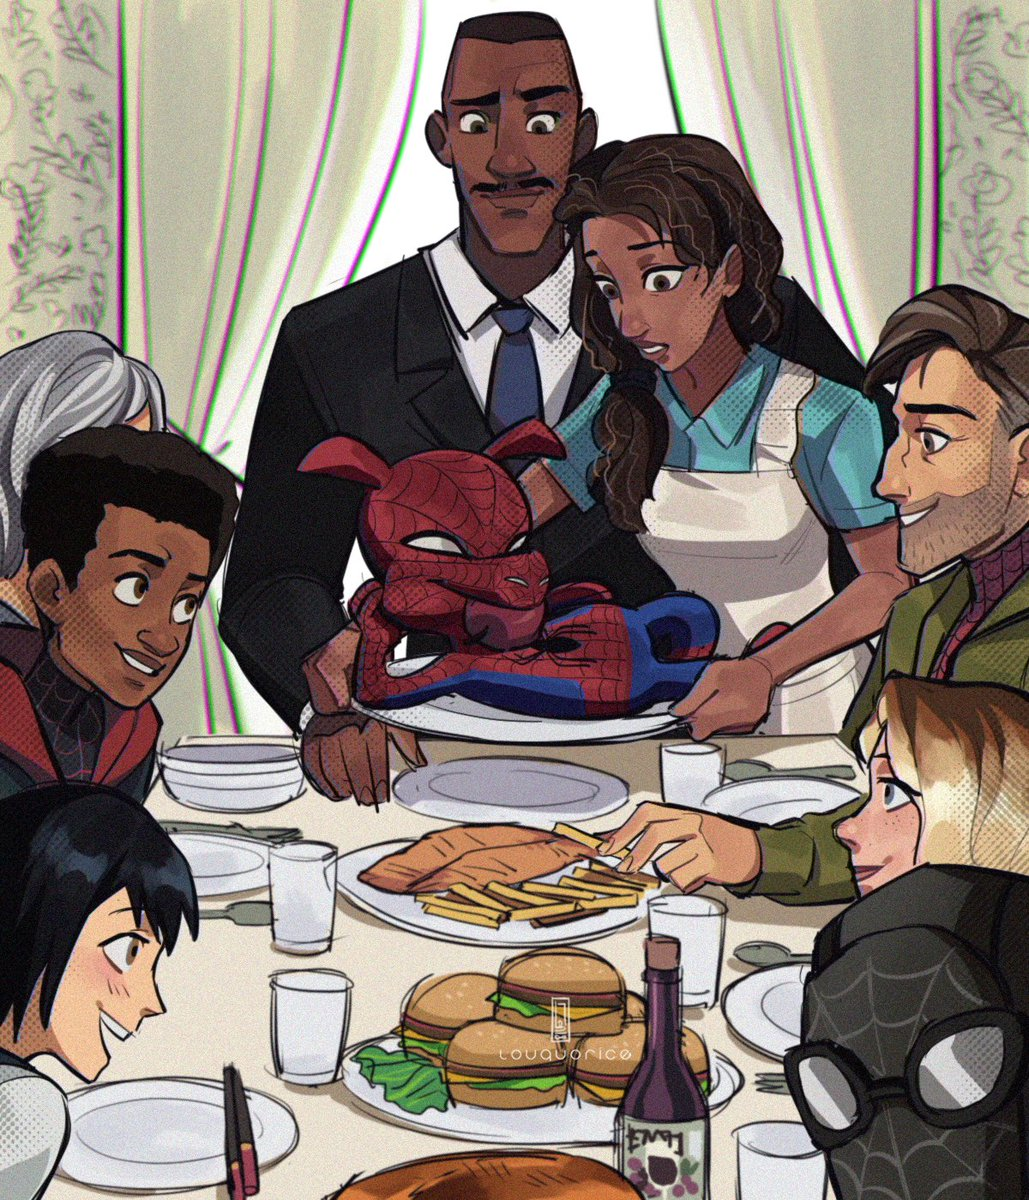 happy birthday to this spiderverse thanksgiving drawing that i originally posted on christmas season instead. also, stay at home